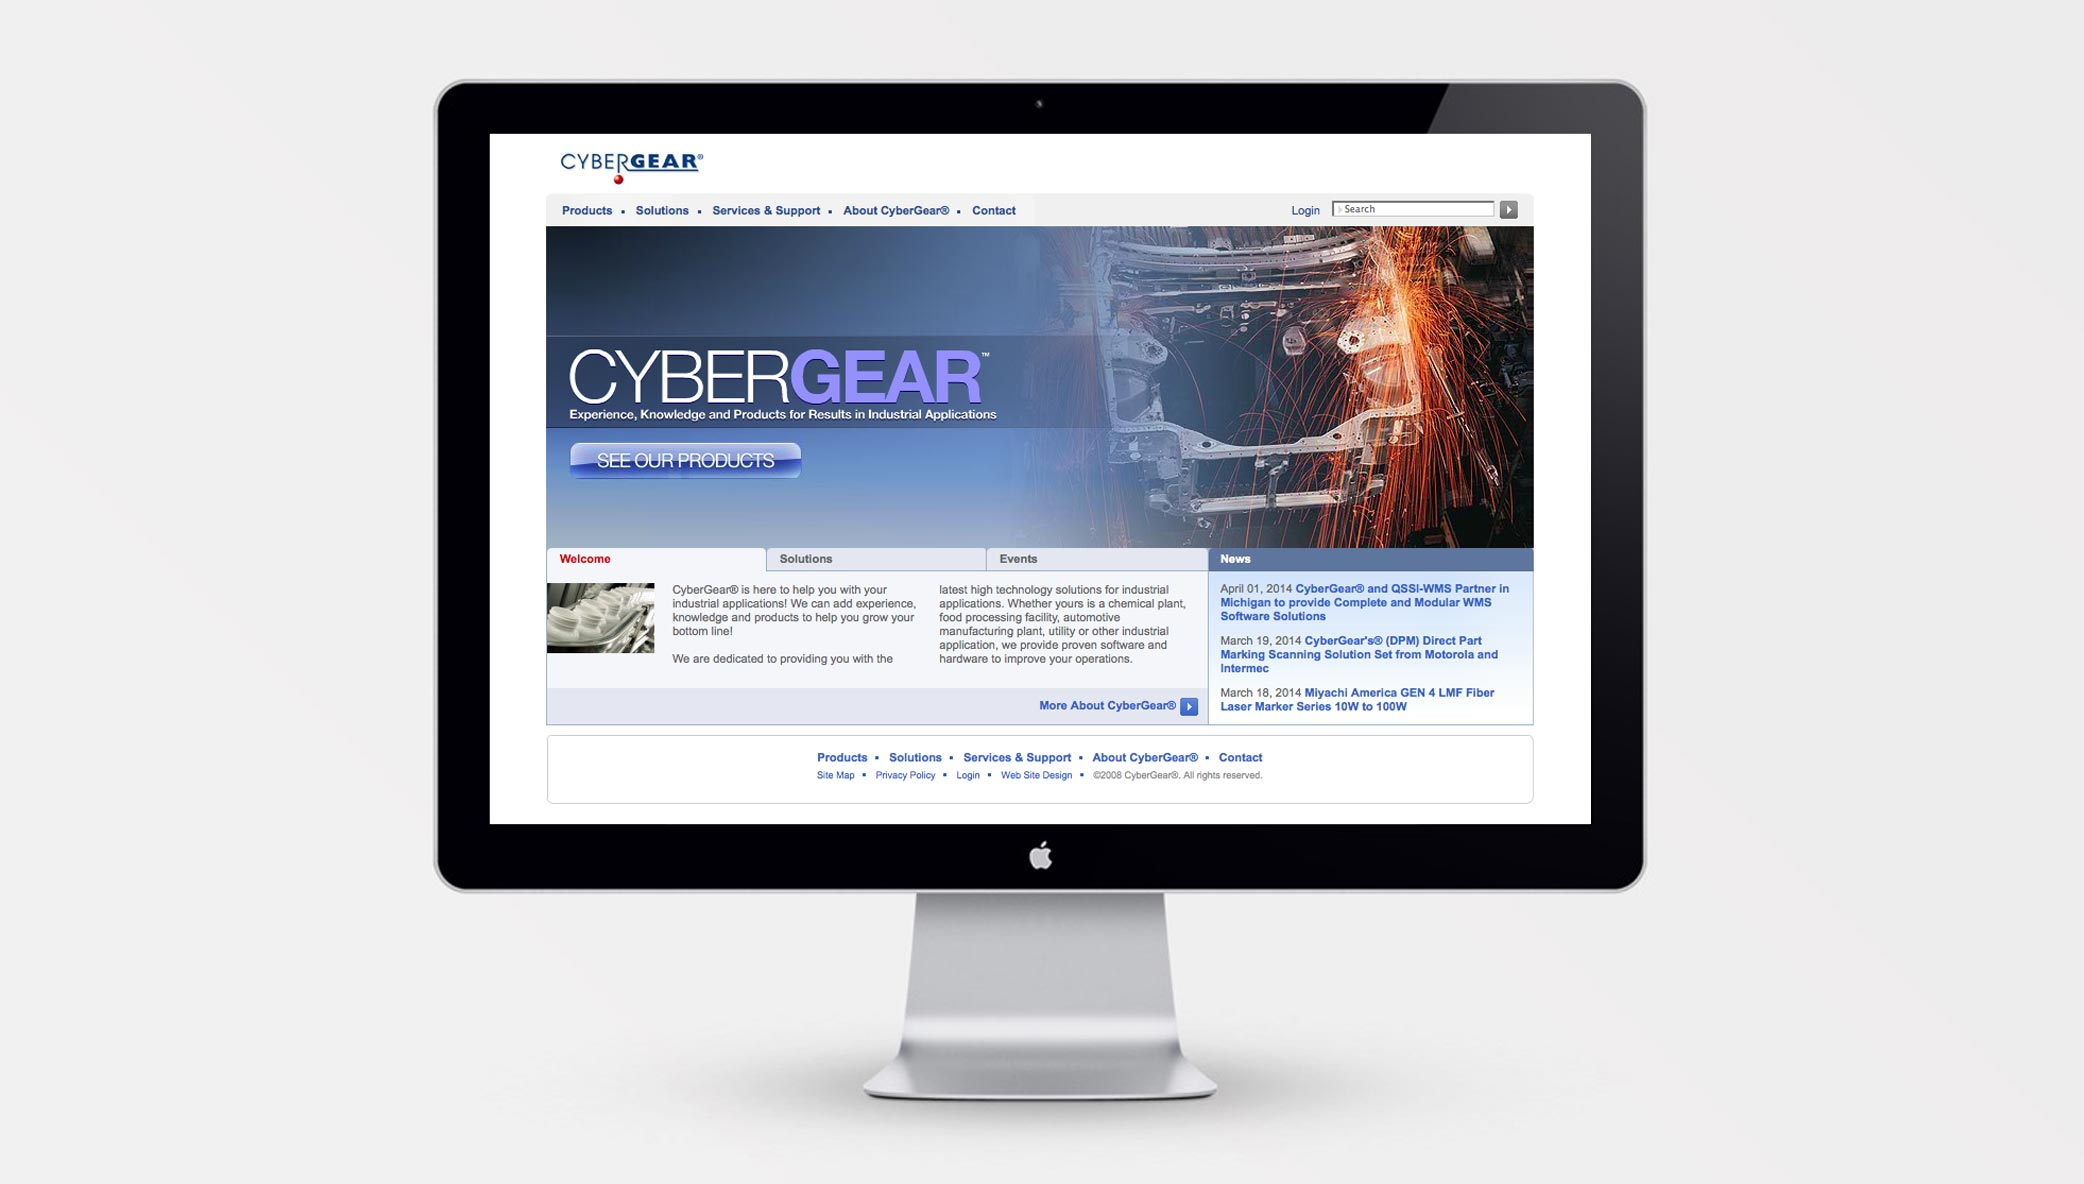 Stone Launches CybersGear's First Website